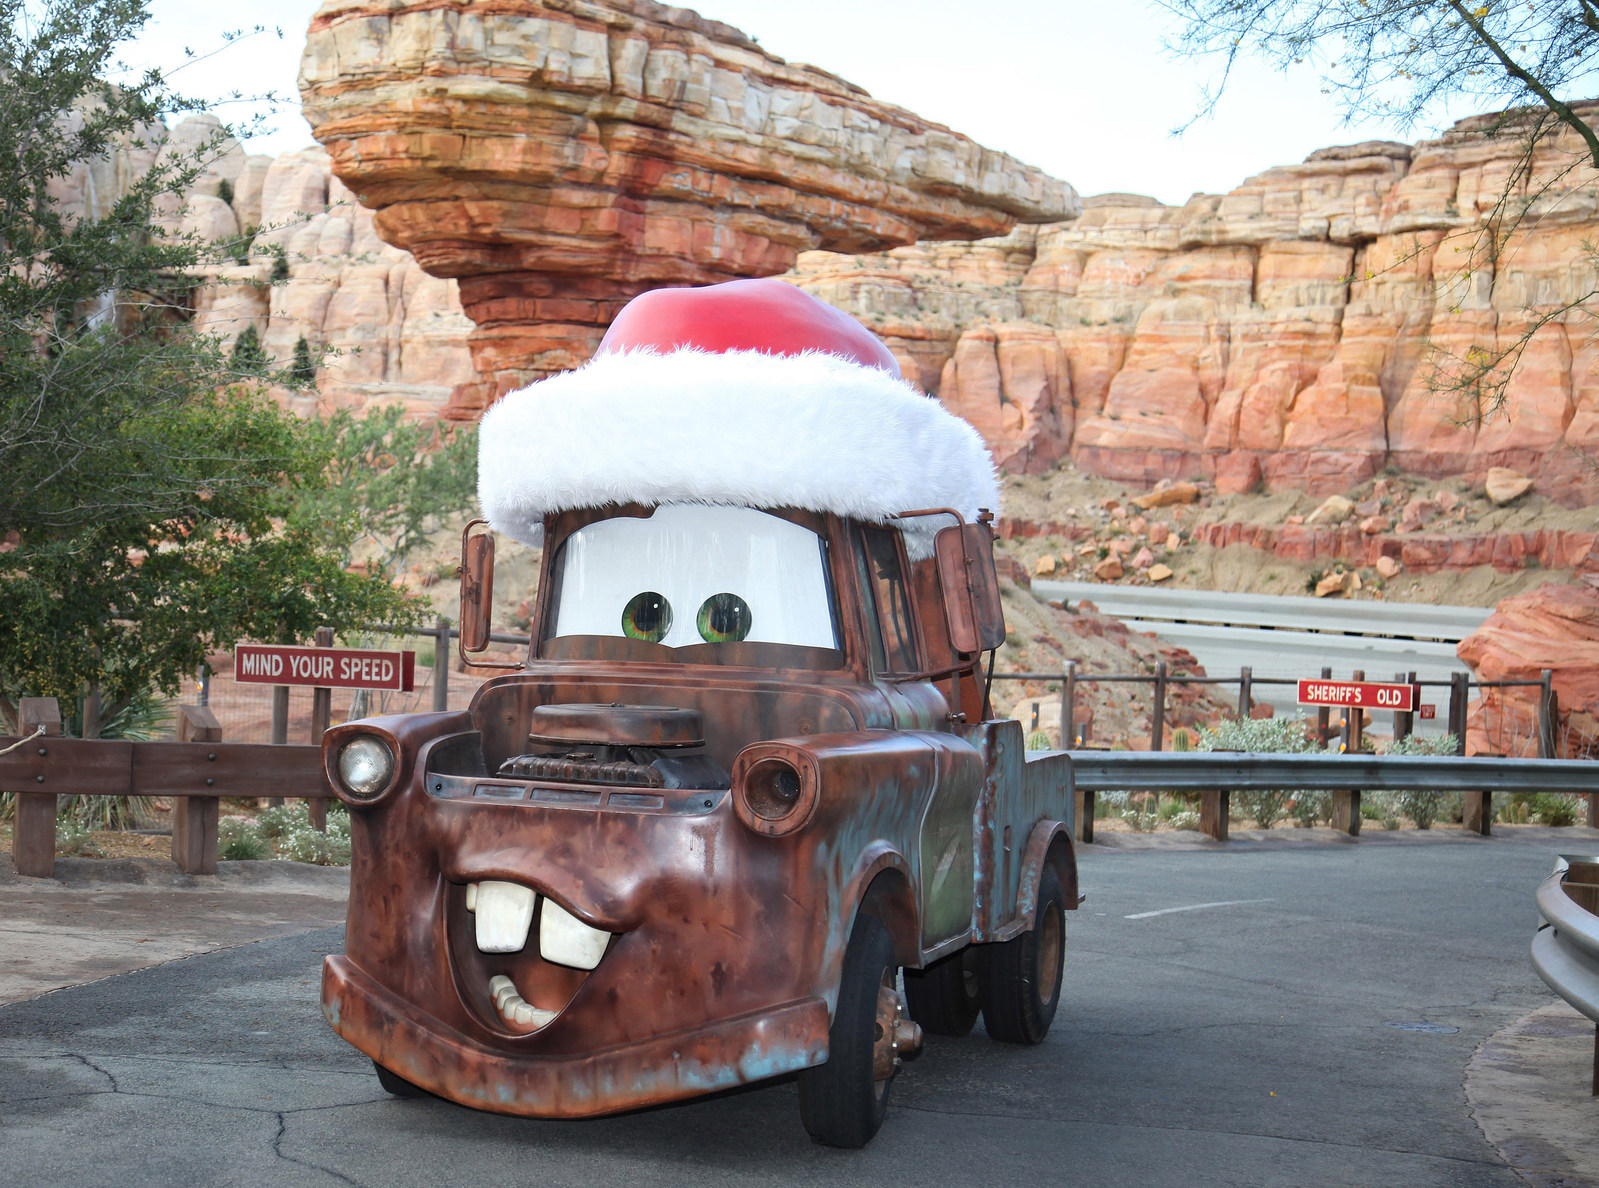 The Holidays Begin Here: Disneyland Resort Celebrates Joyful New Fun at Cars Land, Plus Festival of Holidays